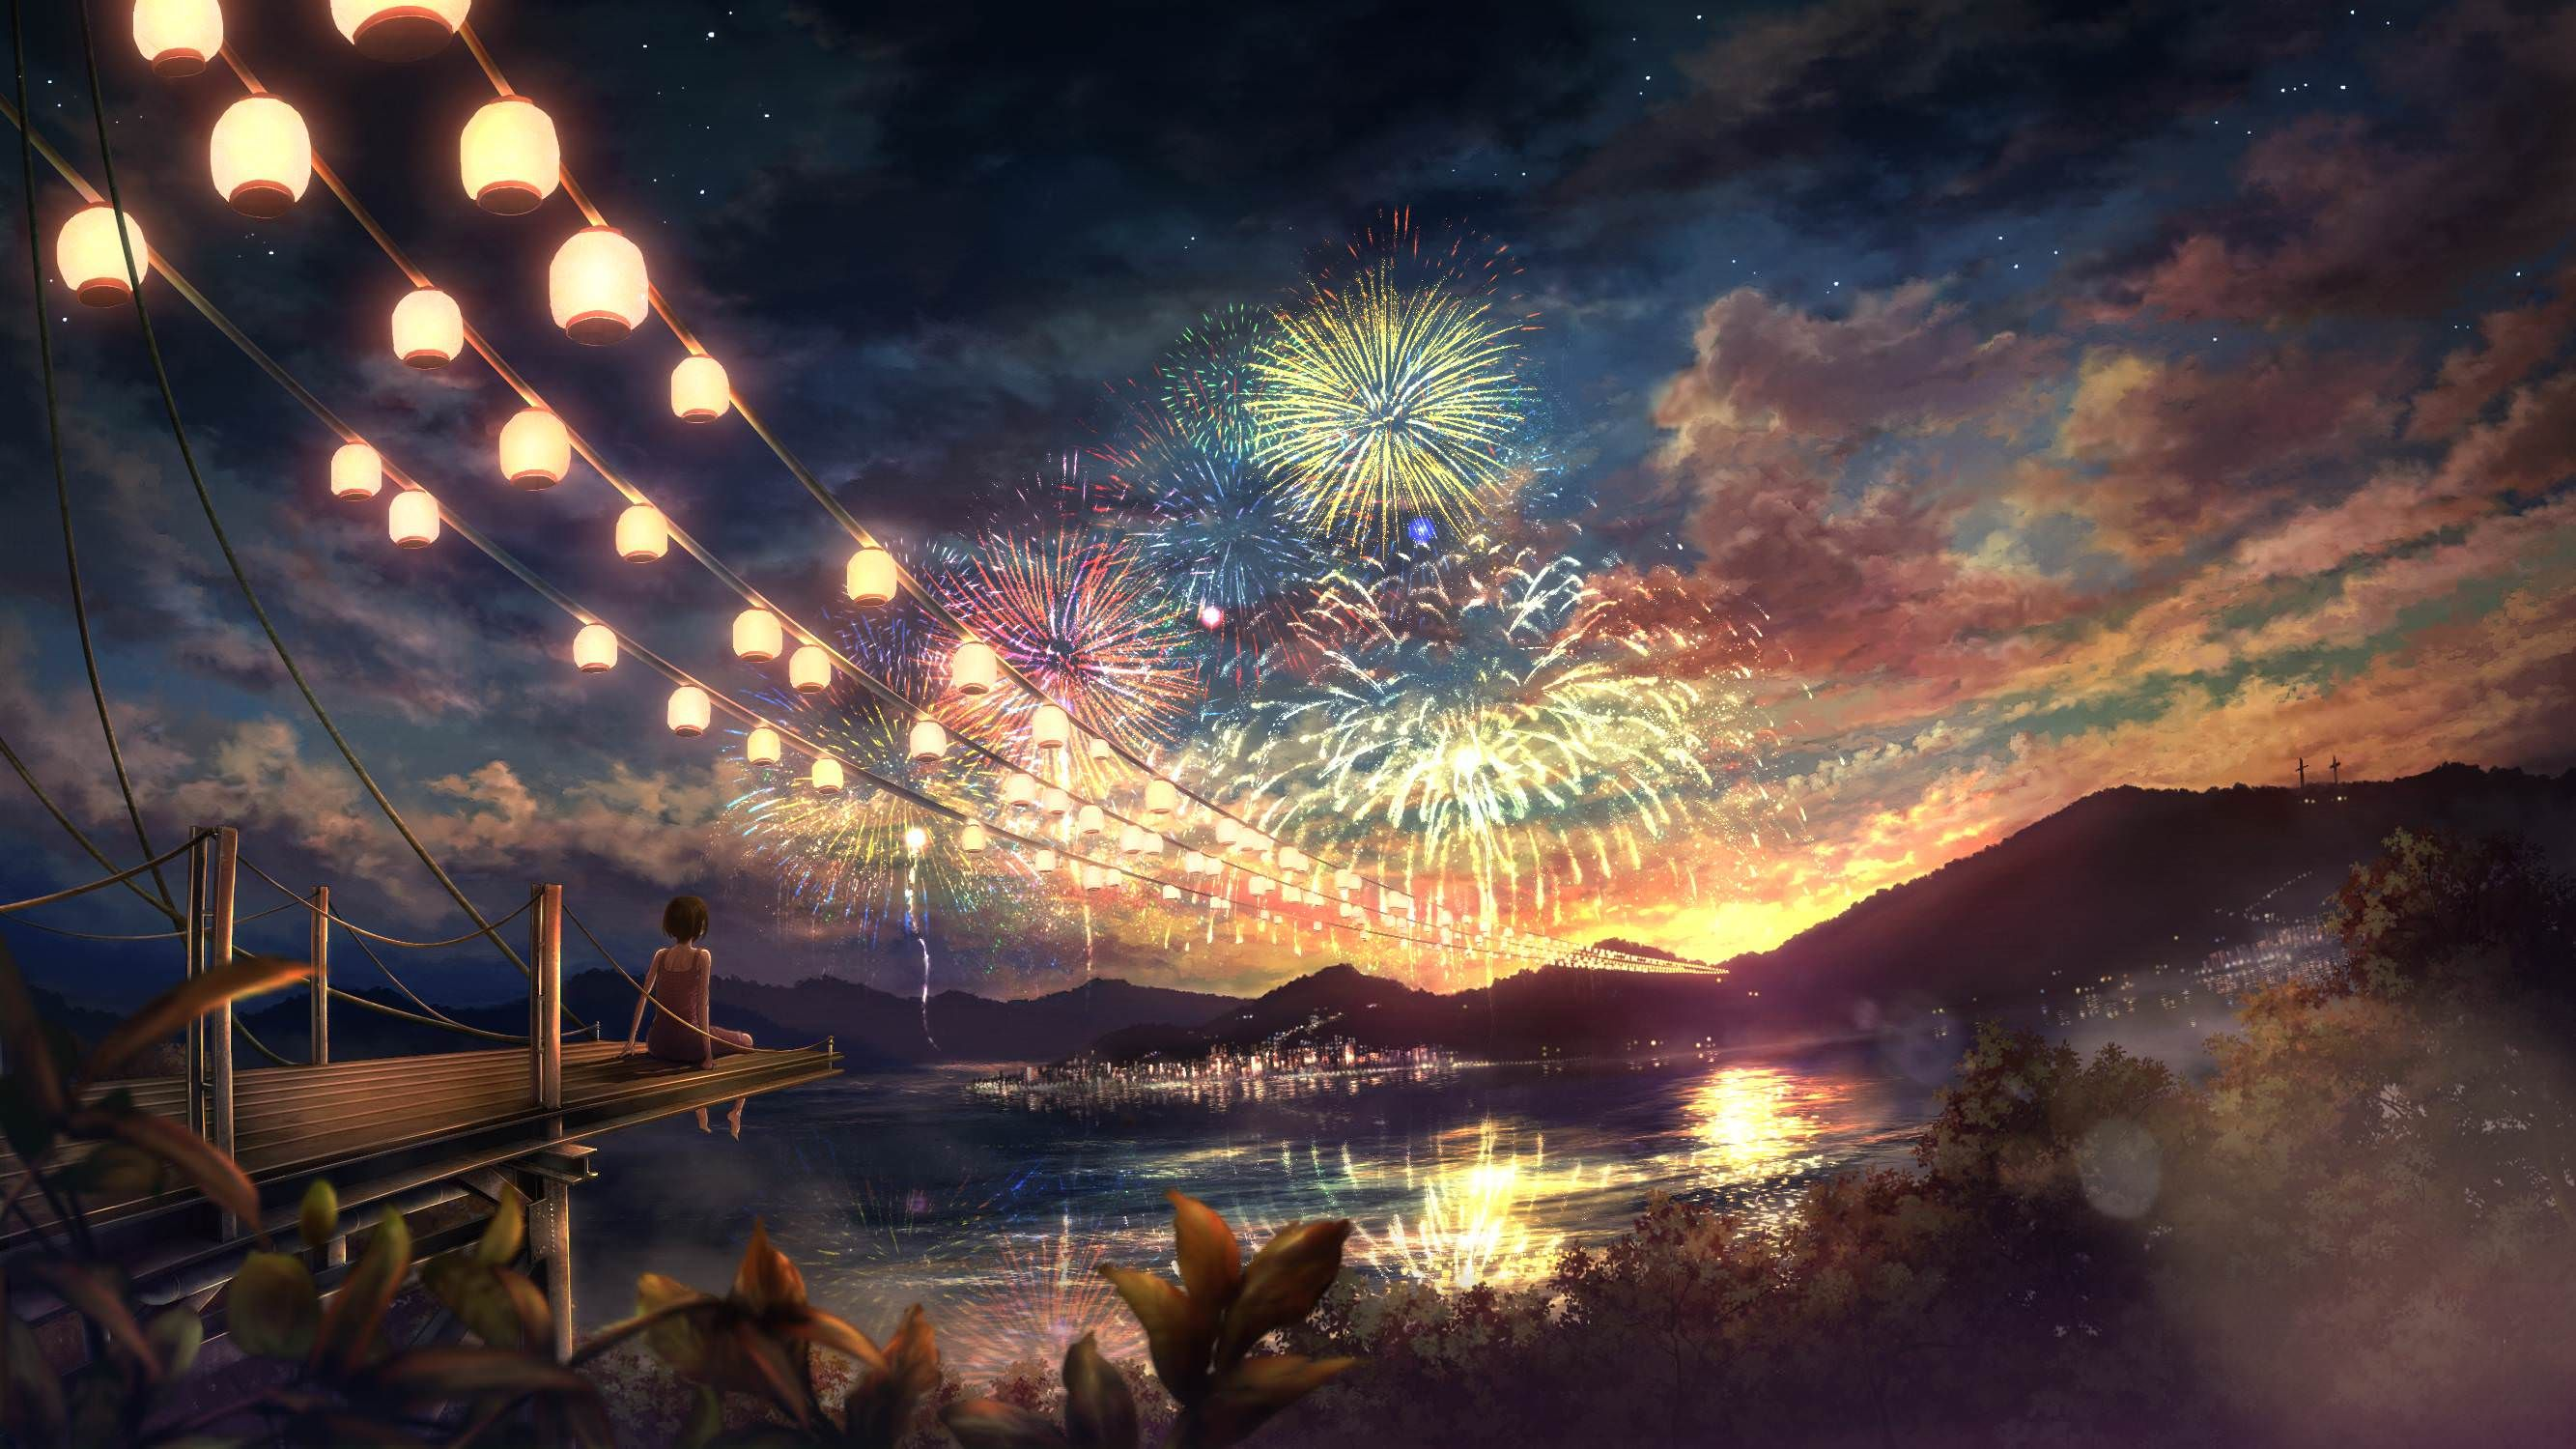 40 Mobile Laptop And Desktop Wallpaper Hd High Resolution 4 With Images Anime Scenery Wallpaper